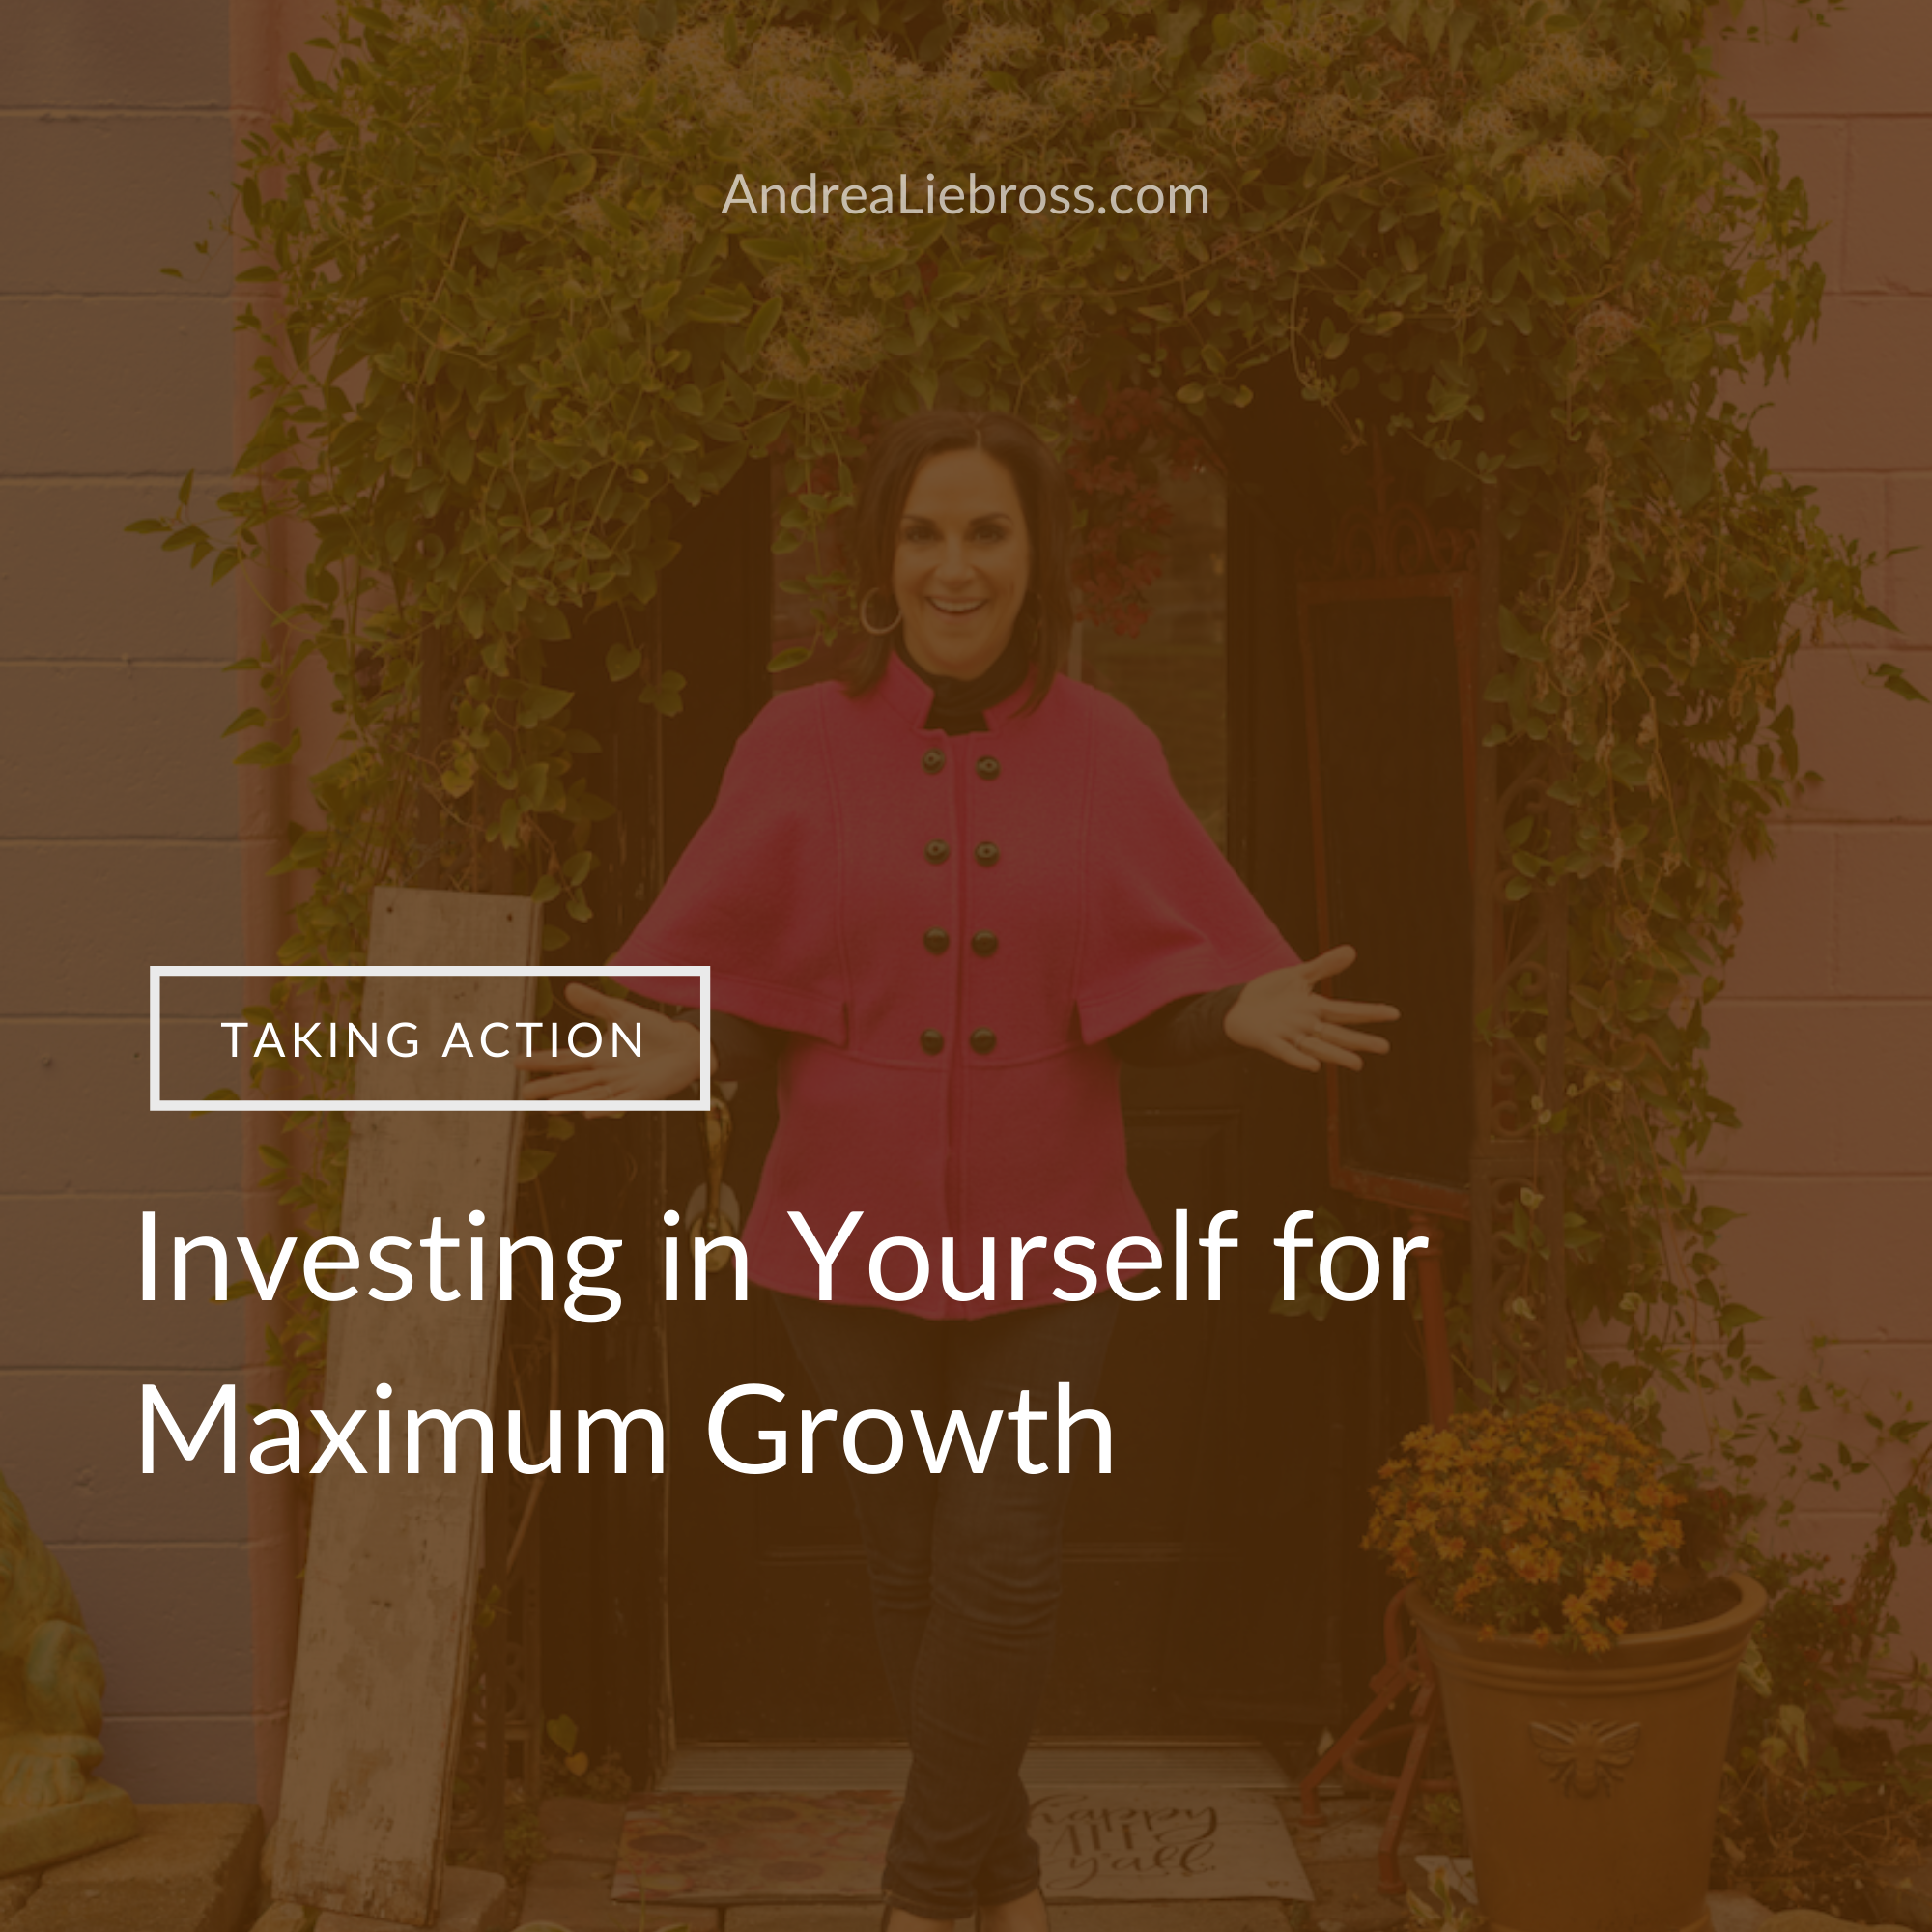 Investing in Yourself for Maximum Growth